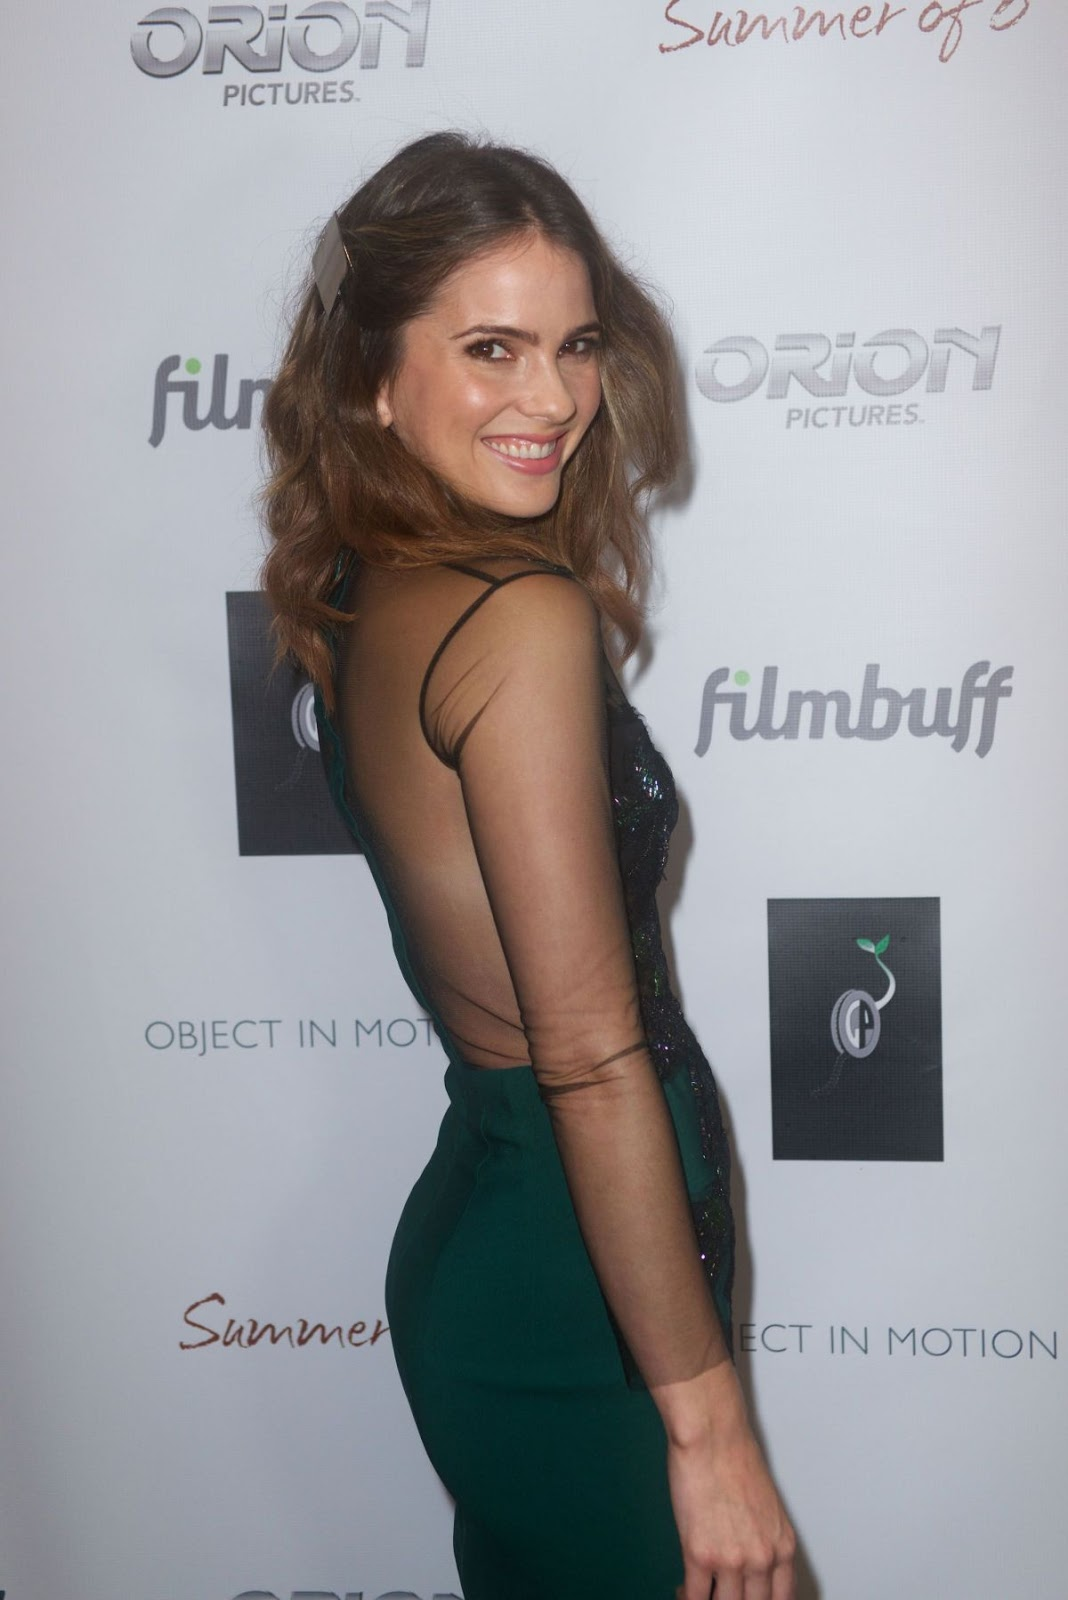 HD Photos of Shelley Hennig at Summer of 8 Los Angeles Premiere